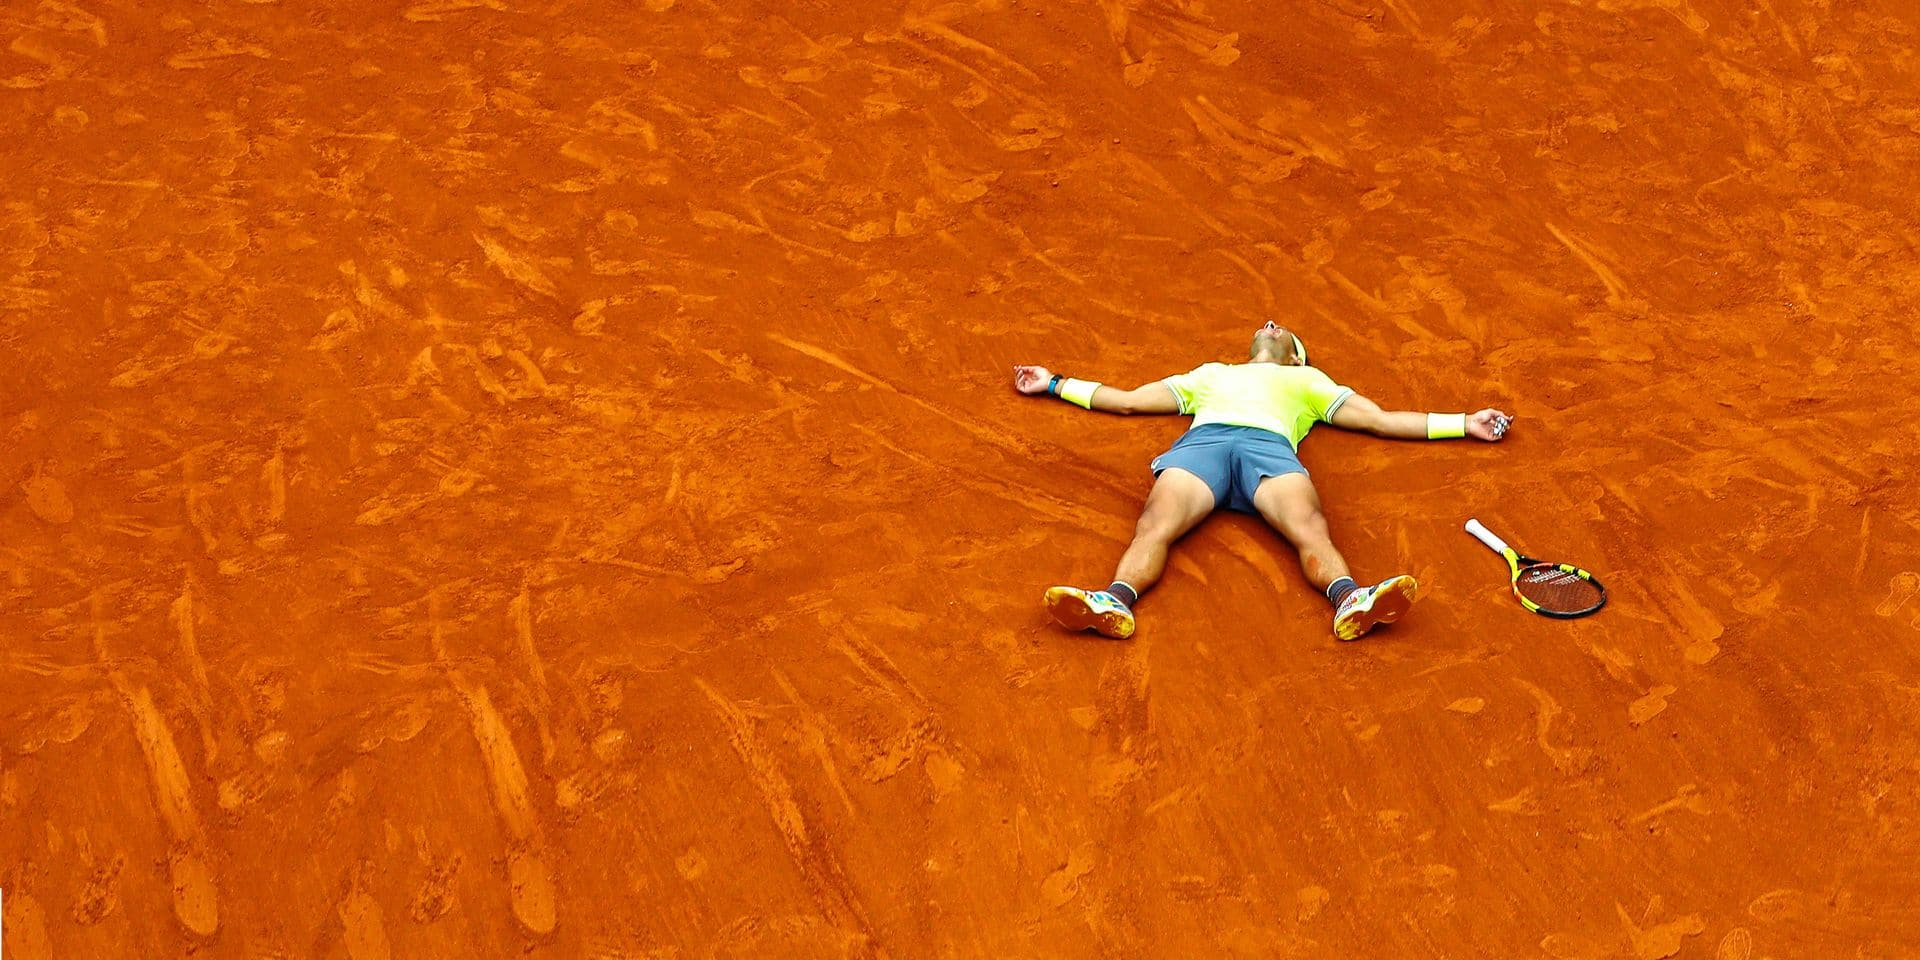 Spain's Rafael Nadal celebrates his record 12th French Open tennis tournament title after winning his men's final match against Austria's Dominic Thiem in four sets, 6-3, 5-7, 6-1, 6-1, at the Roland Garros stadium in Paris, Sunday, June 9, 2019. (AP Photo/Pavel Golovkin)